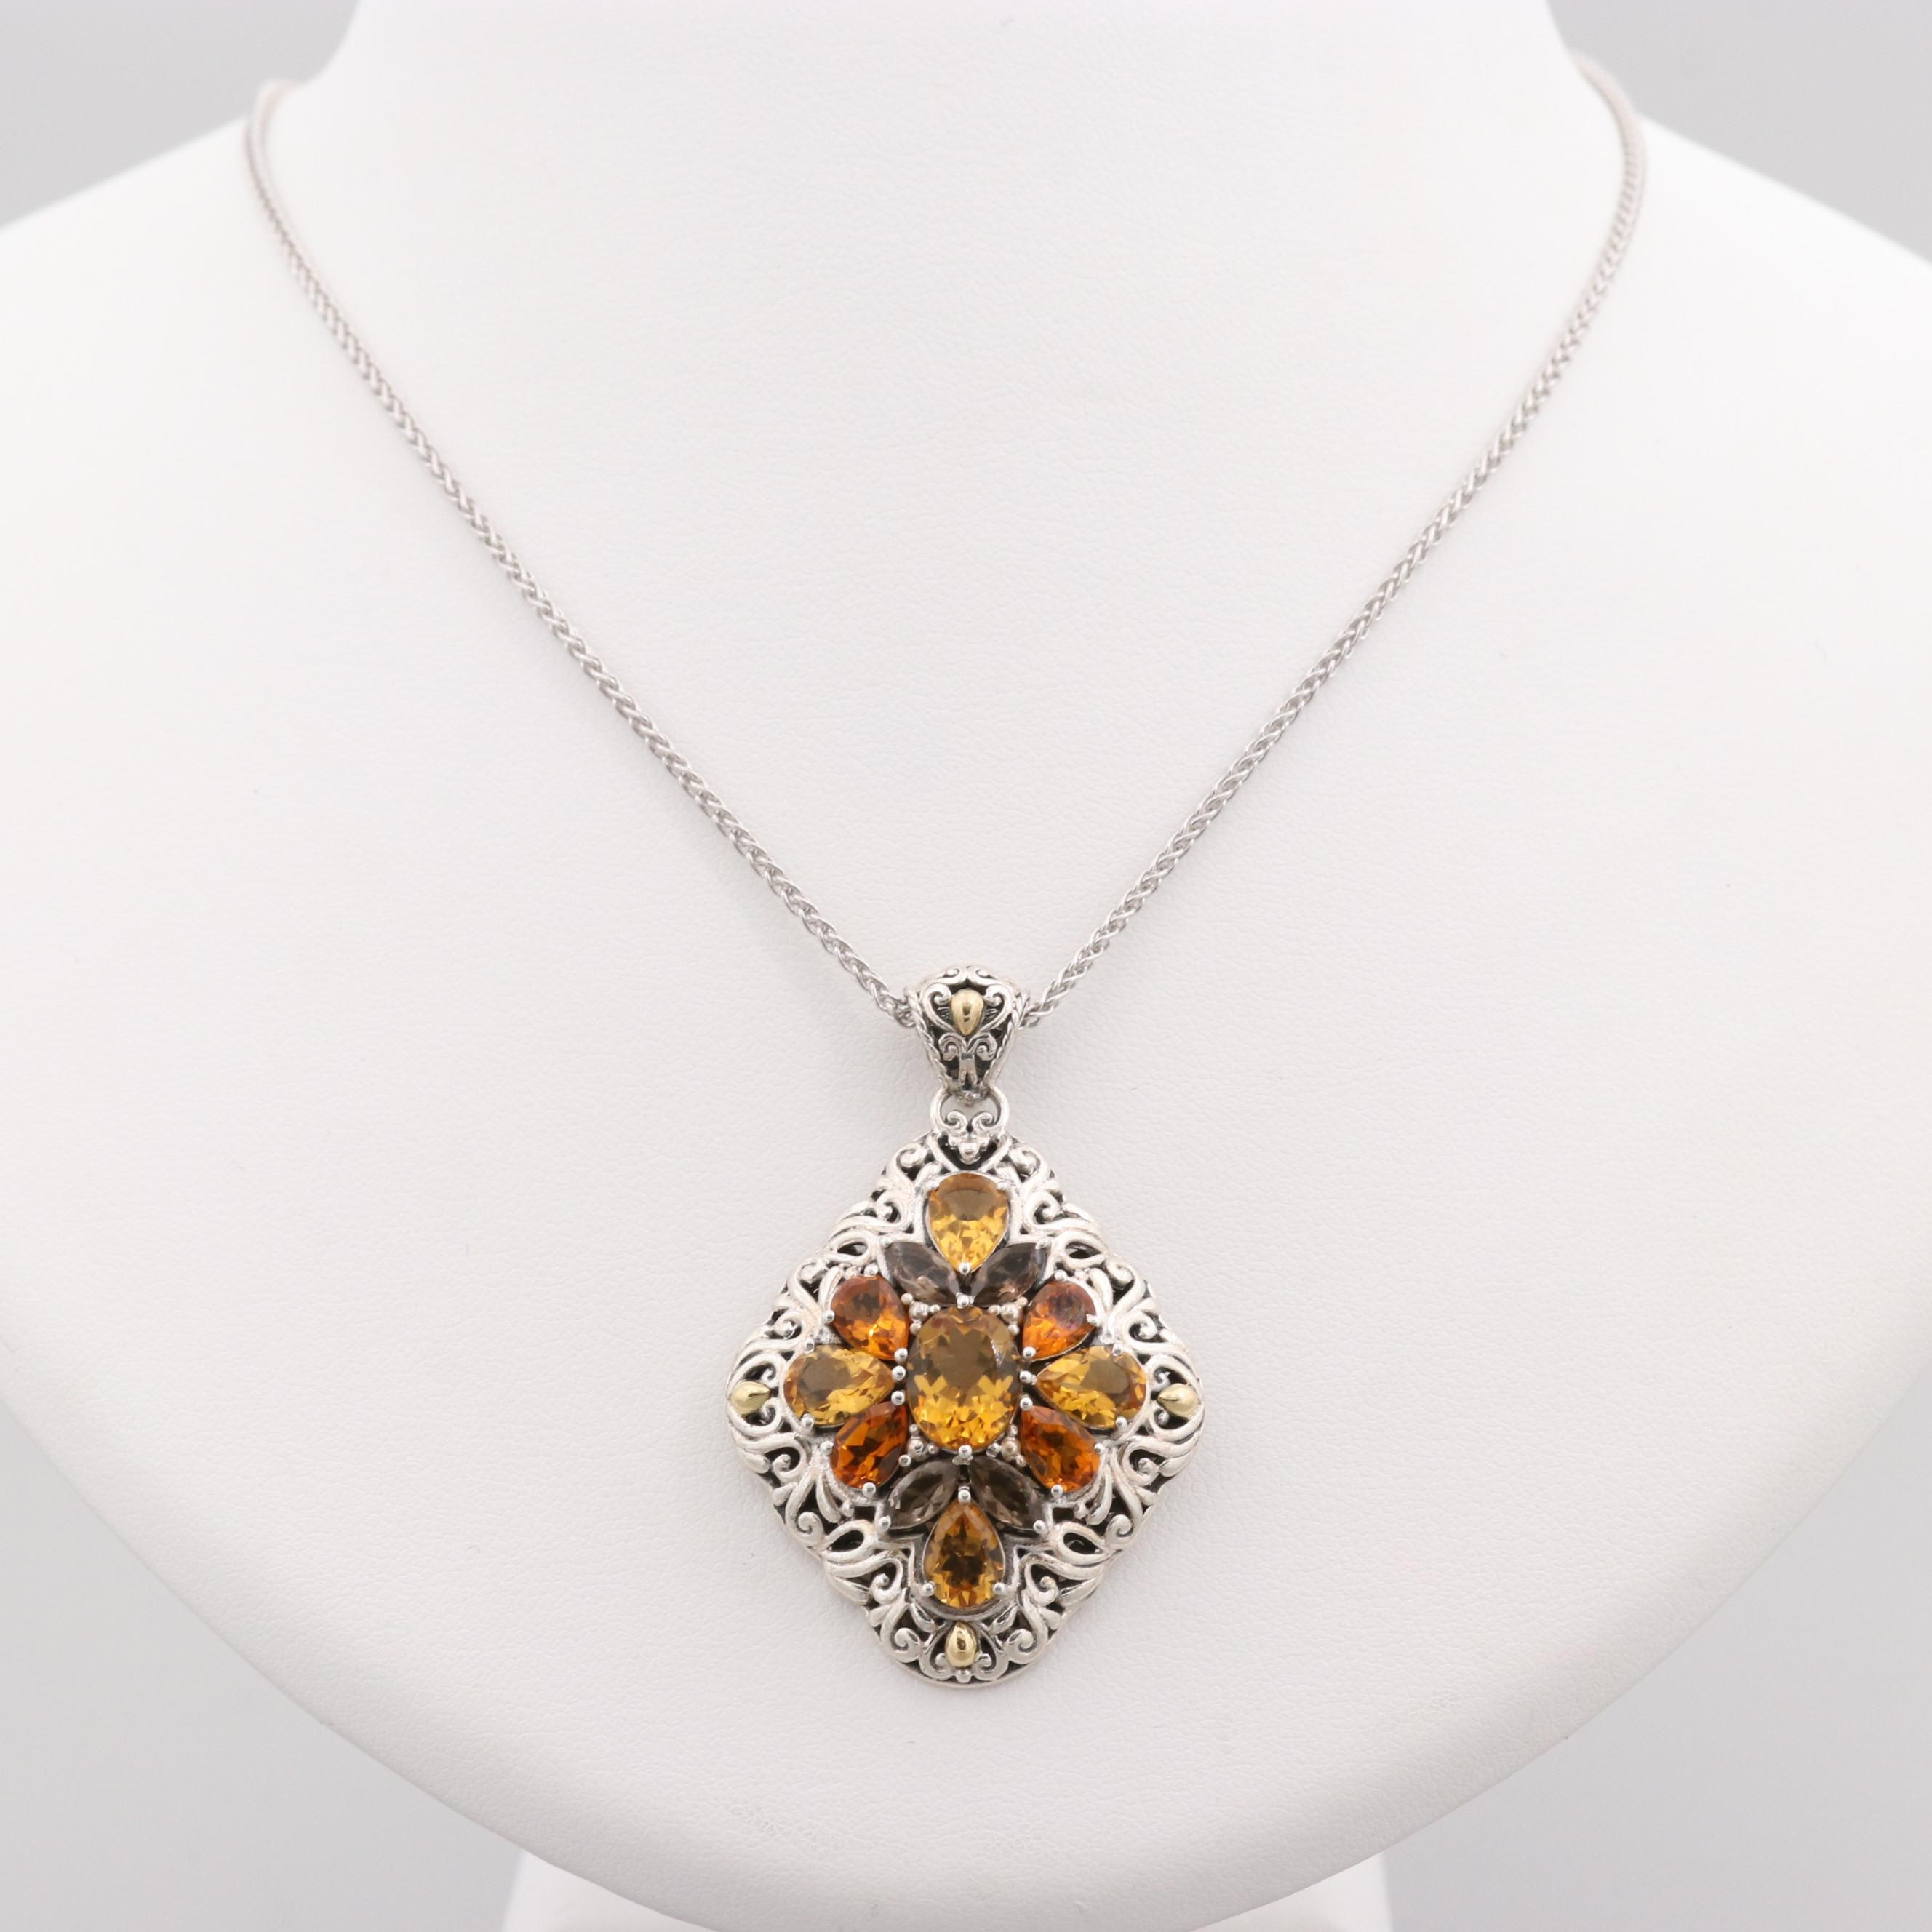 Robert Manse Sterling Citrine and Smoky Quartz Necklace with 18K Gold Accents